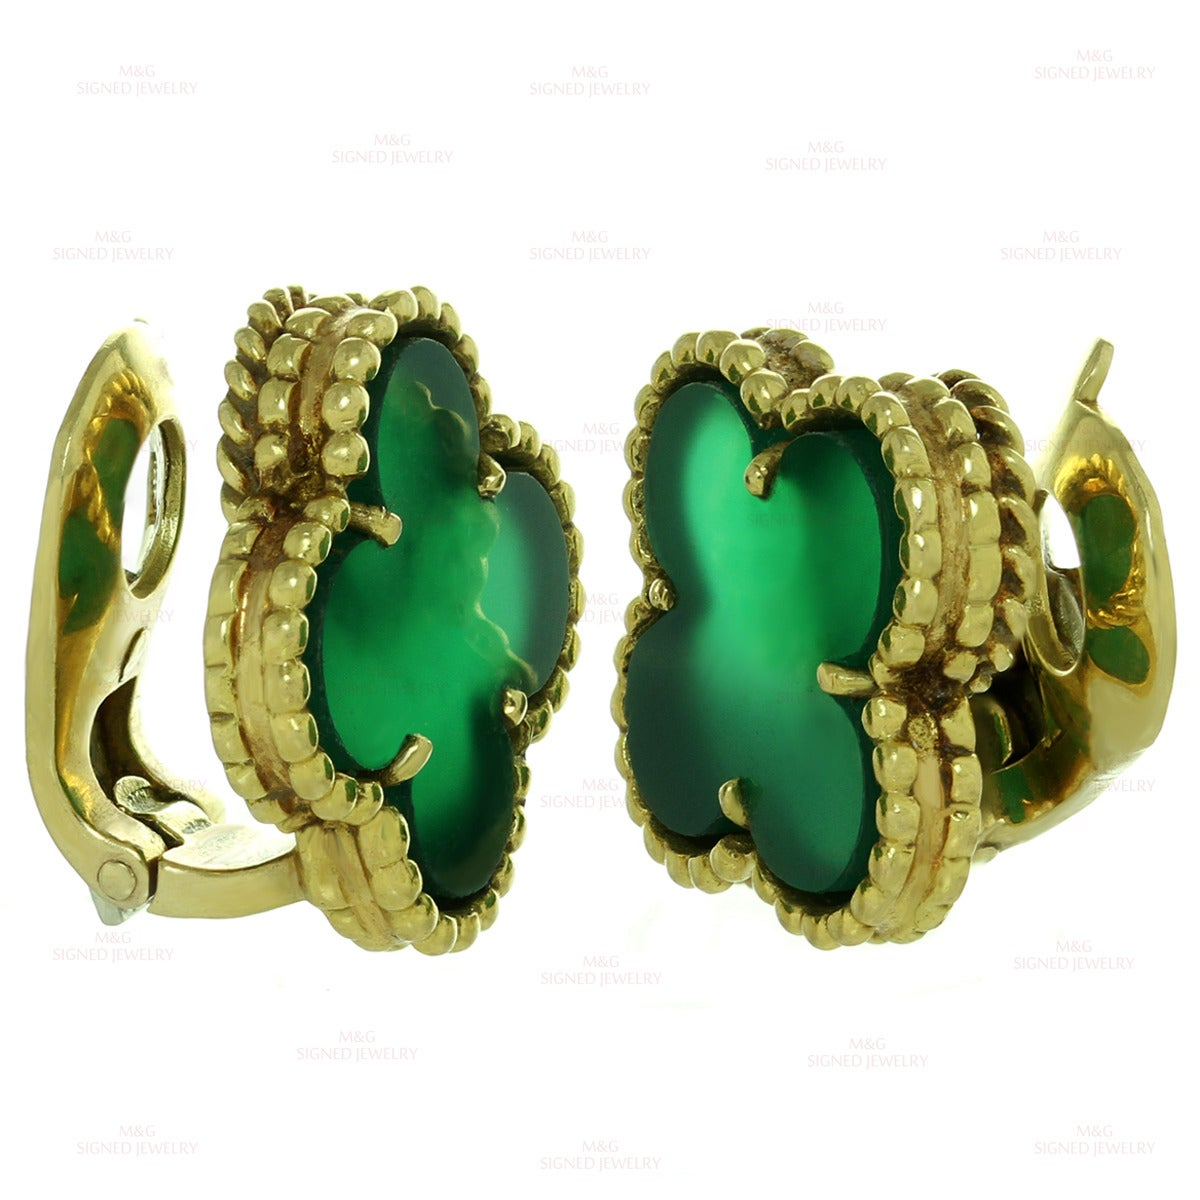 """These stunning Van Cleef & Arpels clip-on earrings from the vintage Alhambra collection feature the lucky clover design crafted in 18k yellow gold and set with green chalcedony stones. Made in France circa 1970s. Measurements: 0.59"""" (15mm)"""